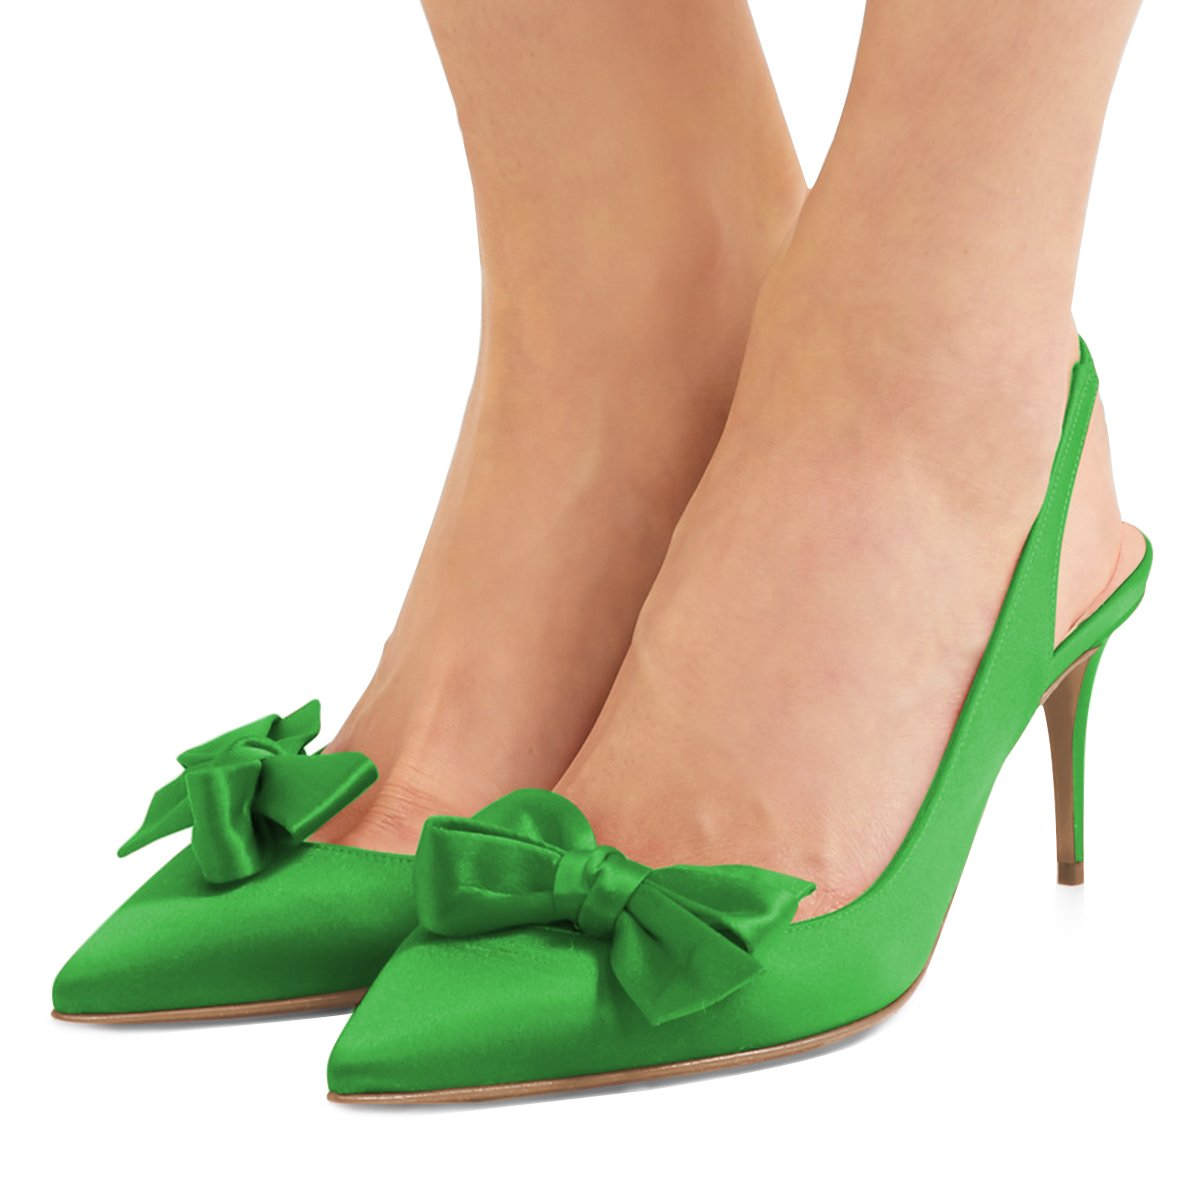 XYD Women Fashion Pointed Toe Slingback Pumps High Heel Slip On Dress Shoes with Bows B0799H5QX2 8 B(M) US|Green